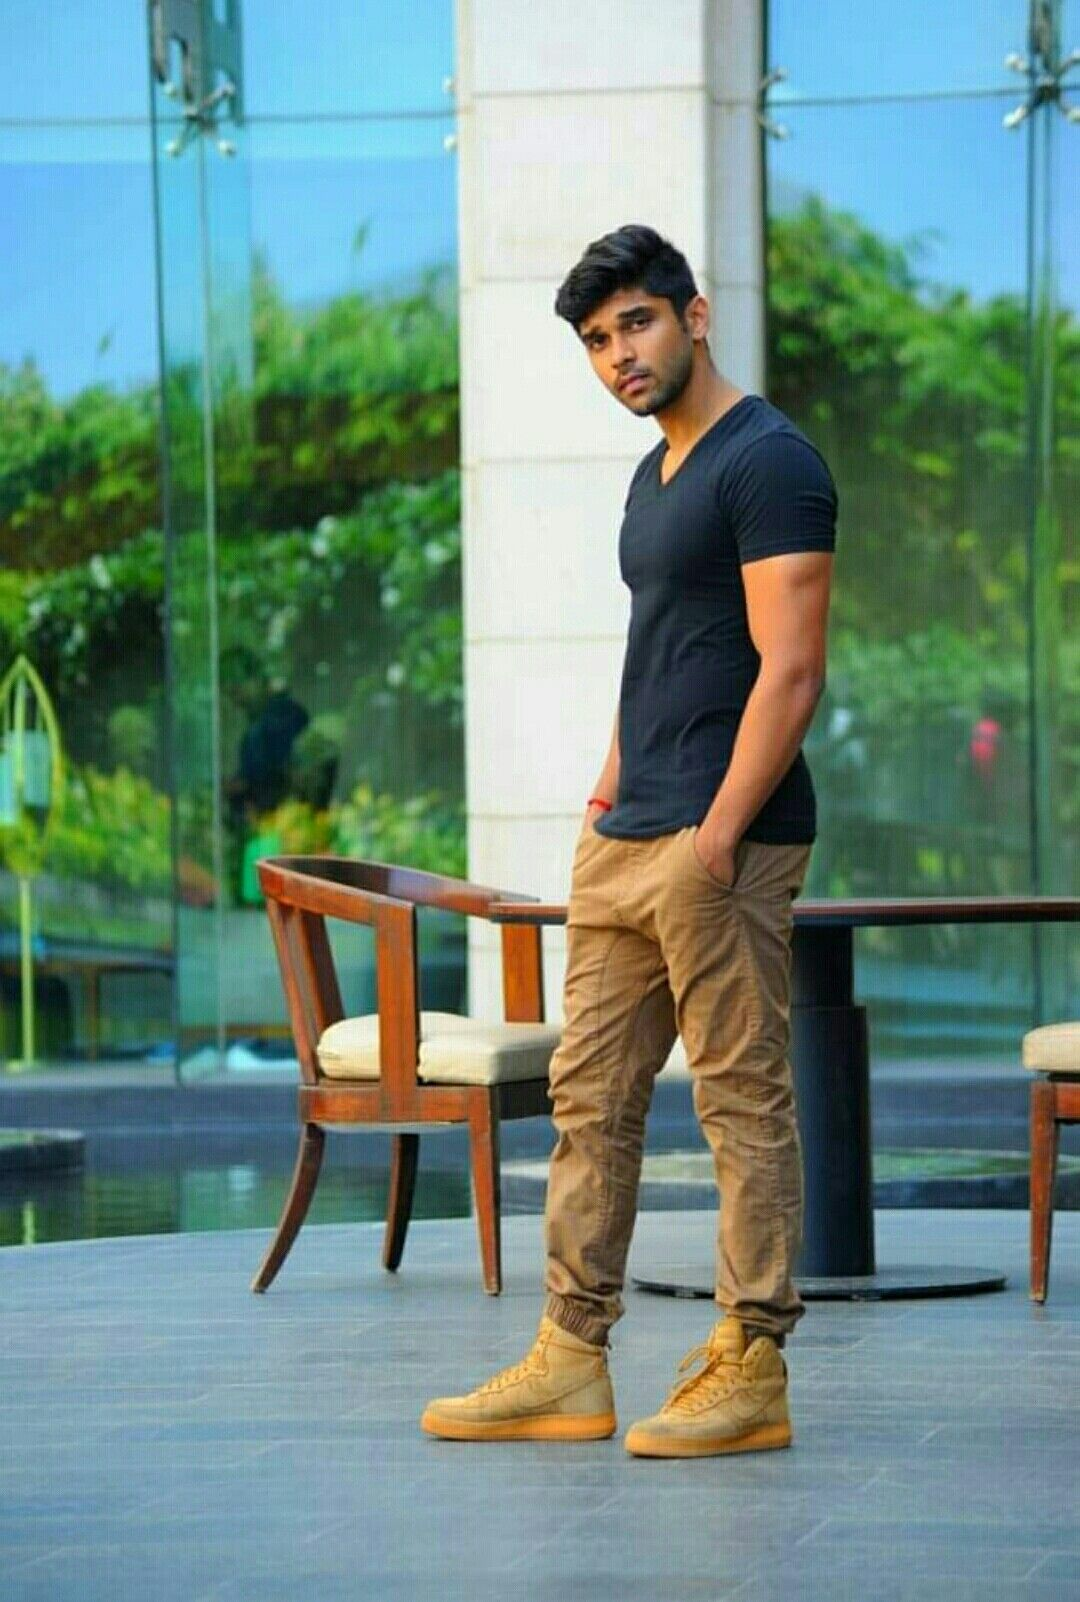 Dhruv vikram | Actor photo, Actor picture